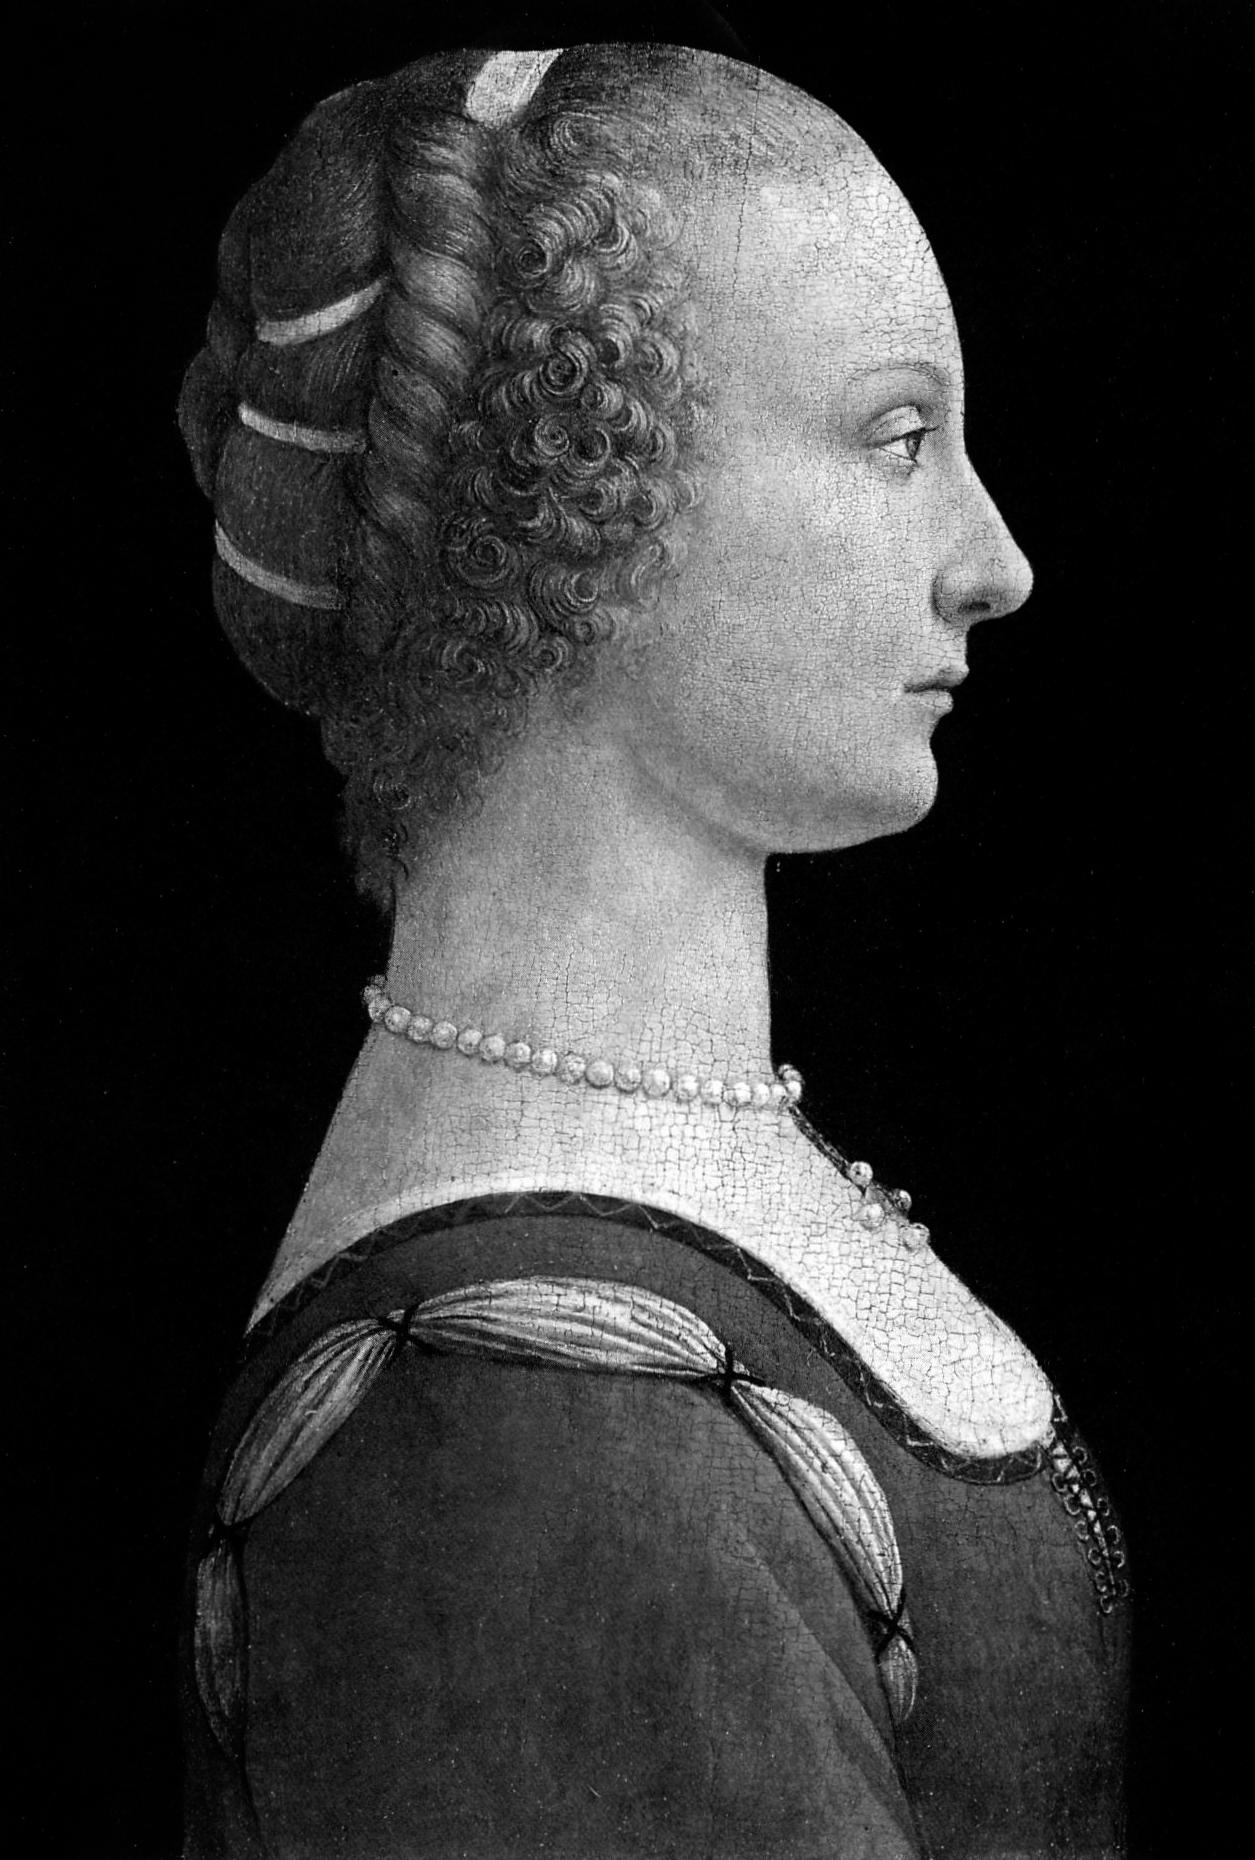 ghirlandaio essay Domenico ghirlandaio (1449 – 1494) feminine clothing takes on a symbolic meaning in warburg's famous essay, inspired by discussions with jolles.